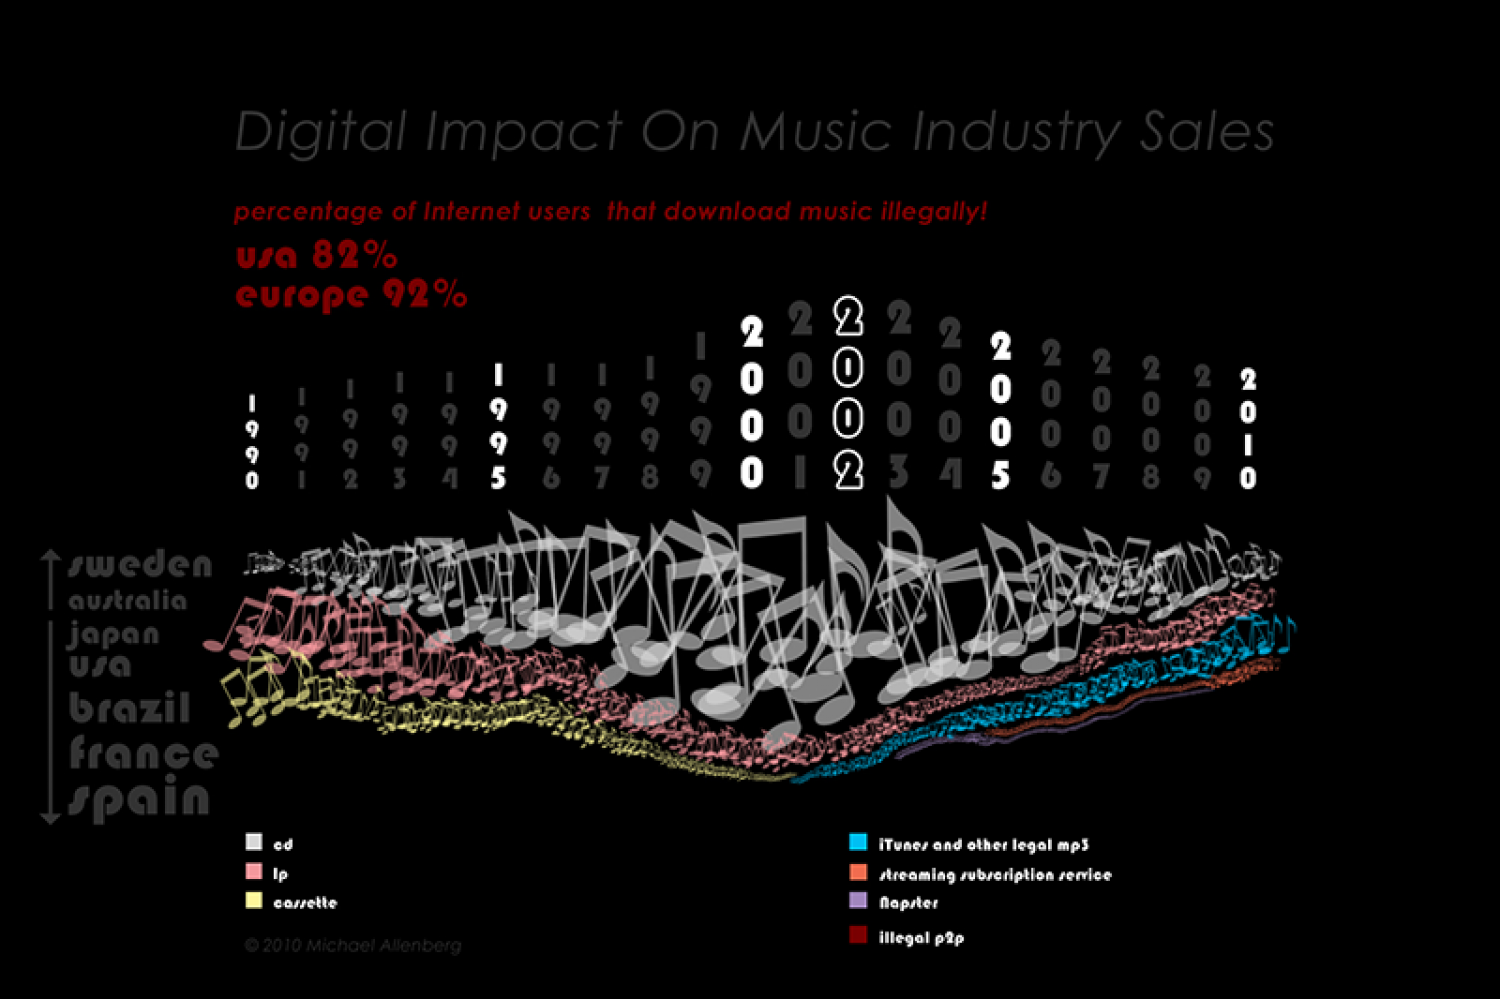 Digital Music Impact On Sales Infographic